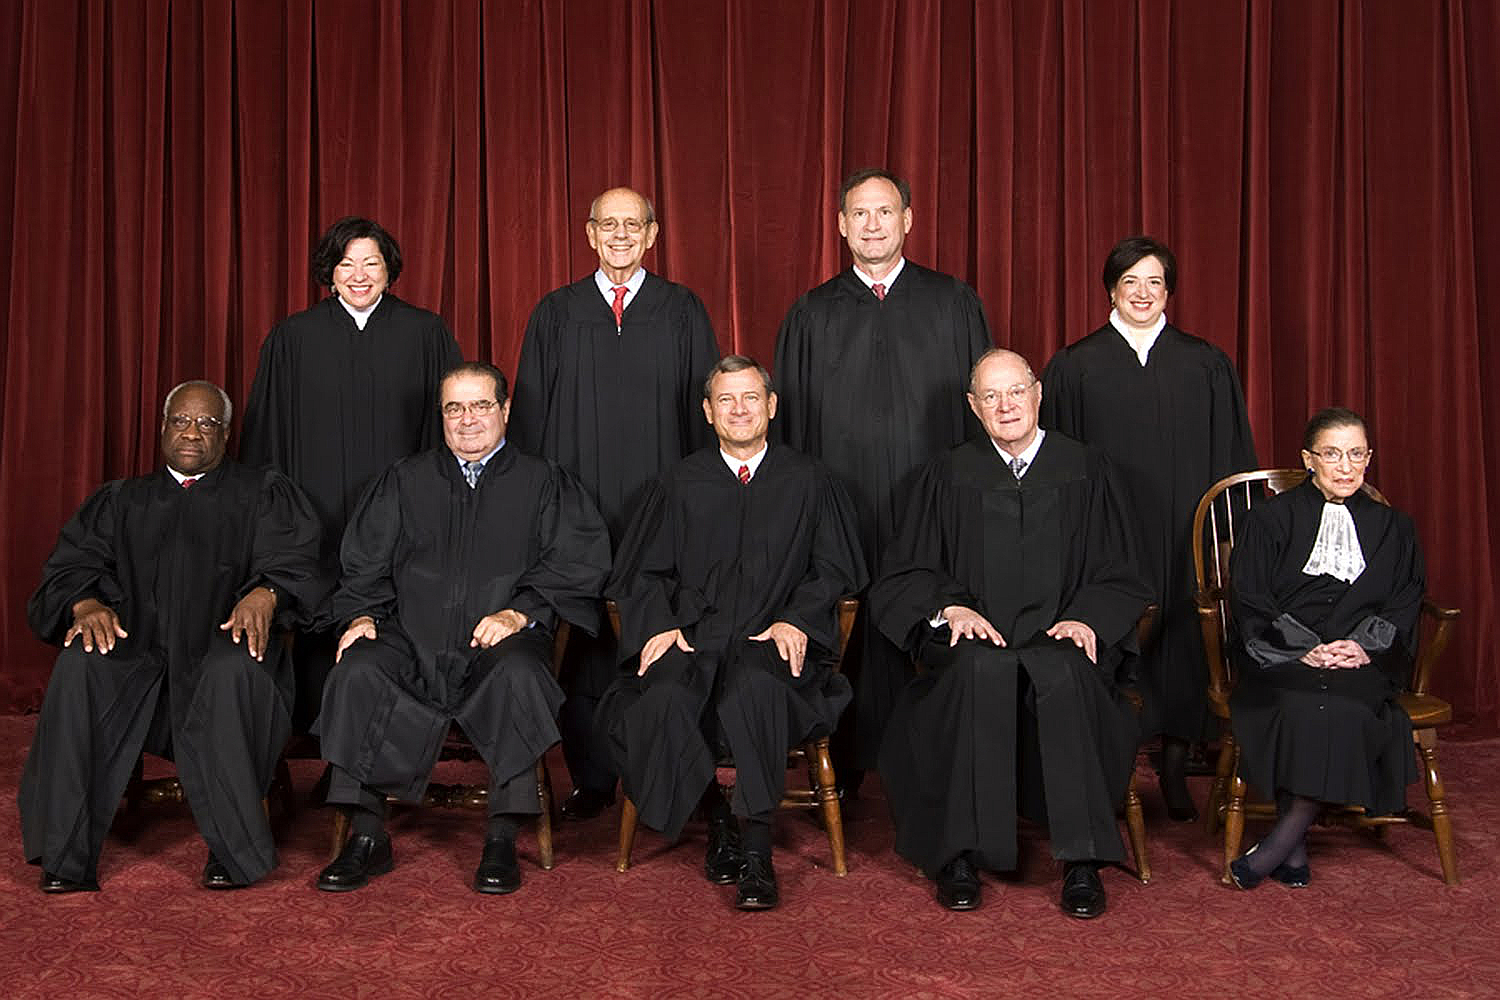 The Justices of the Supreme Court of the United States of America (Scalia has since passed away)